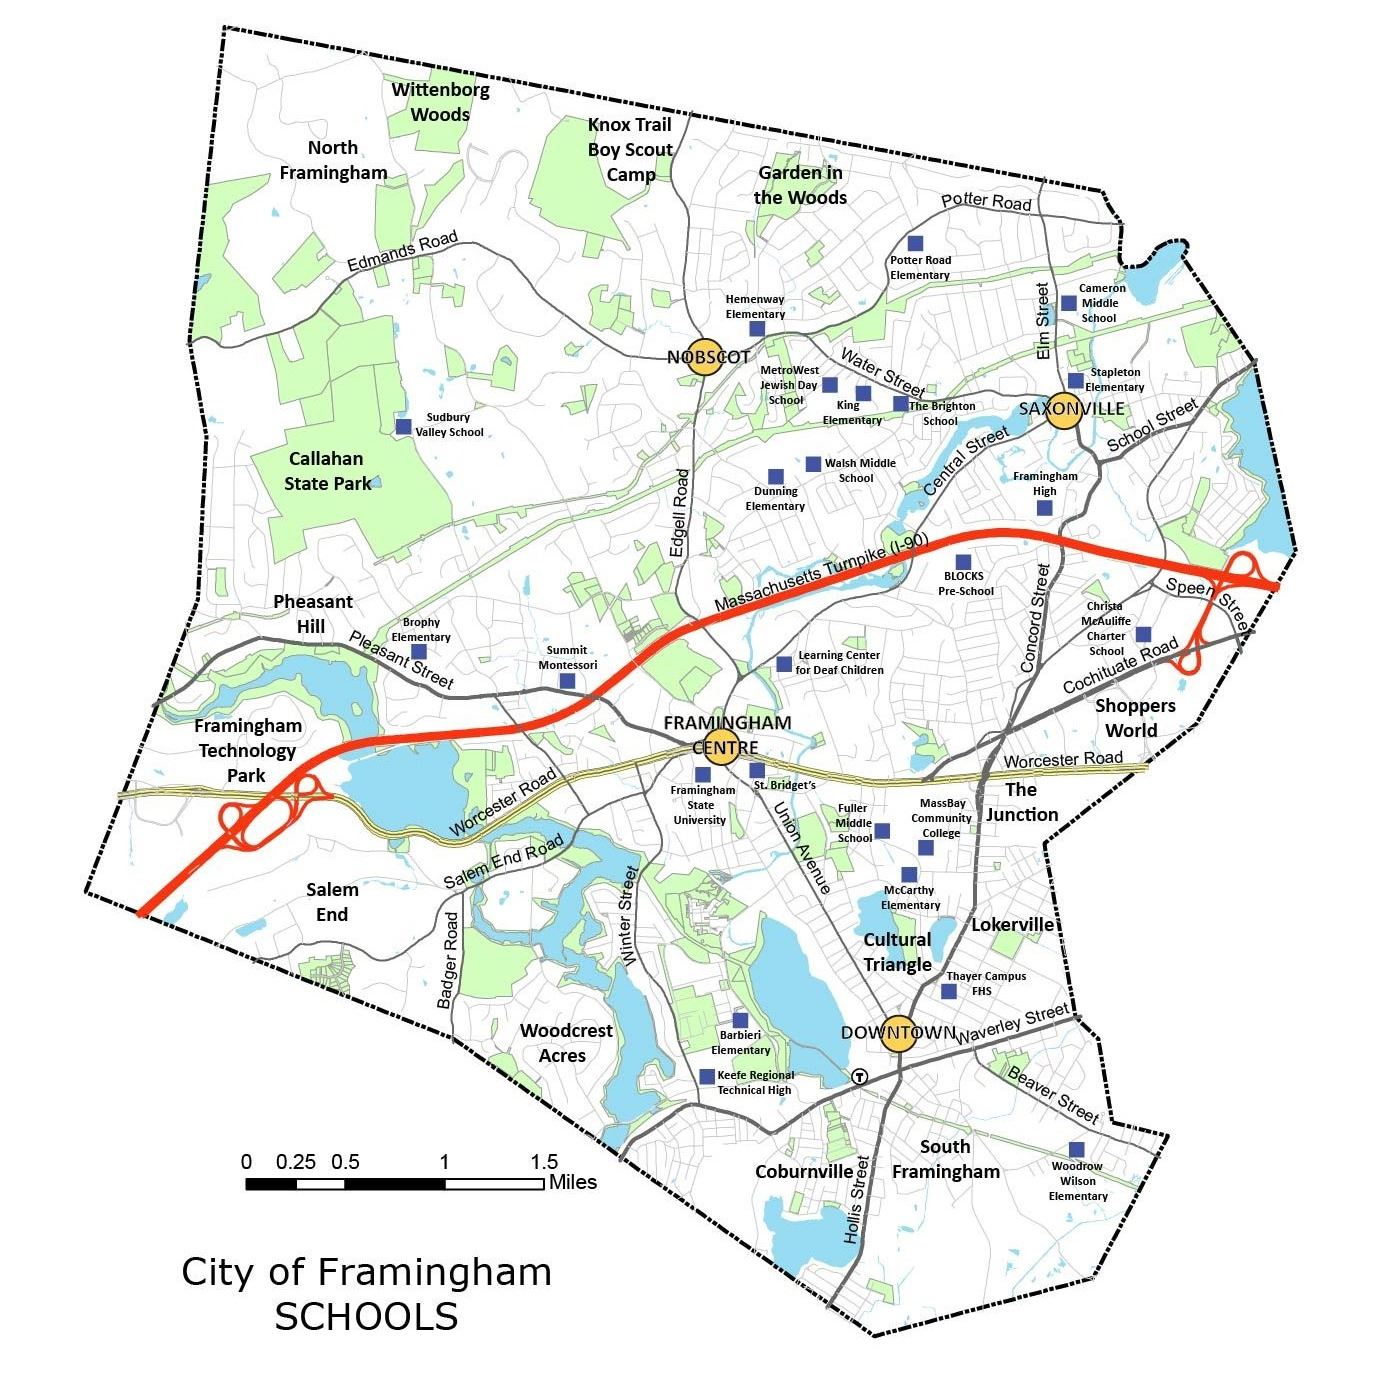 map of City of Framingham schools